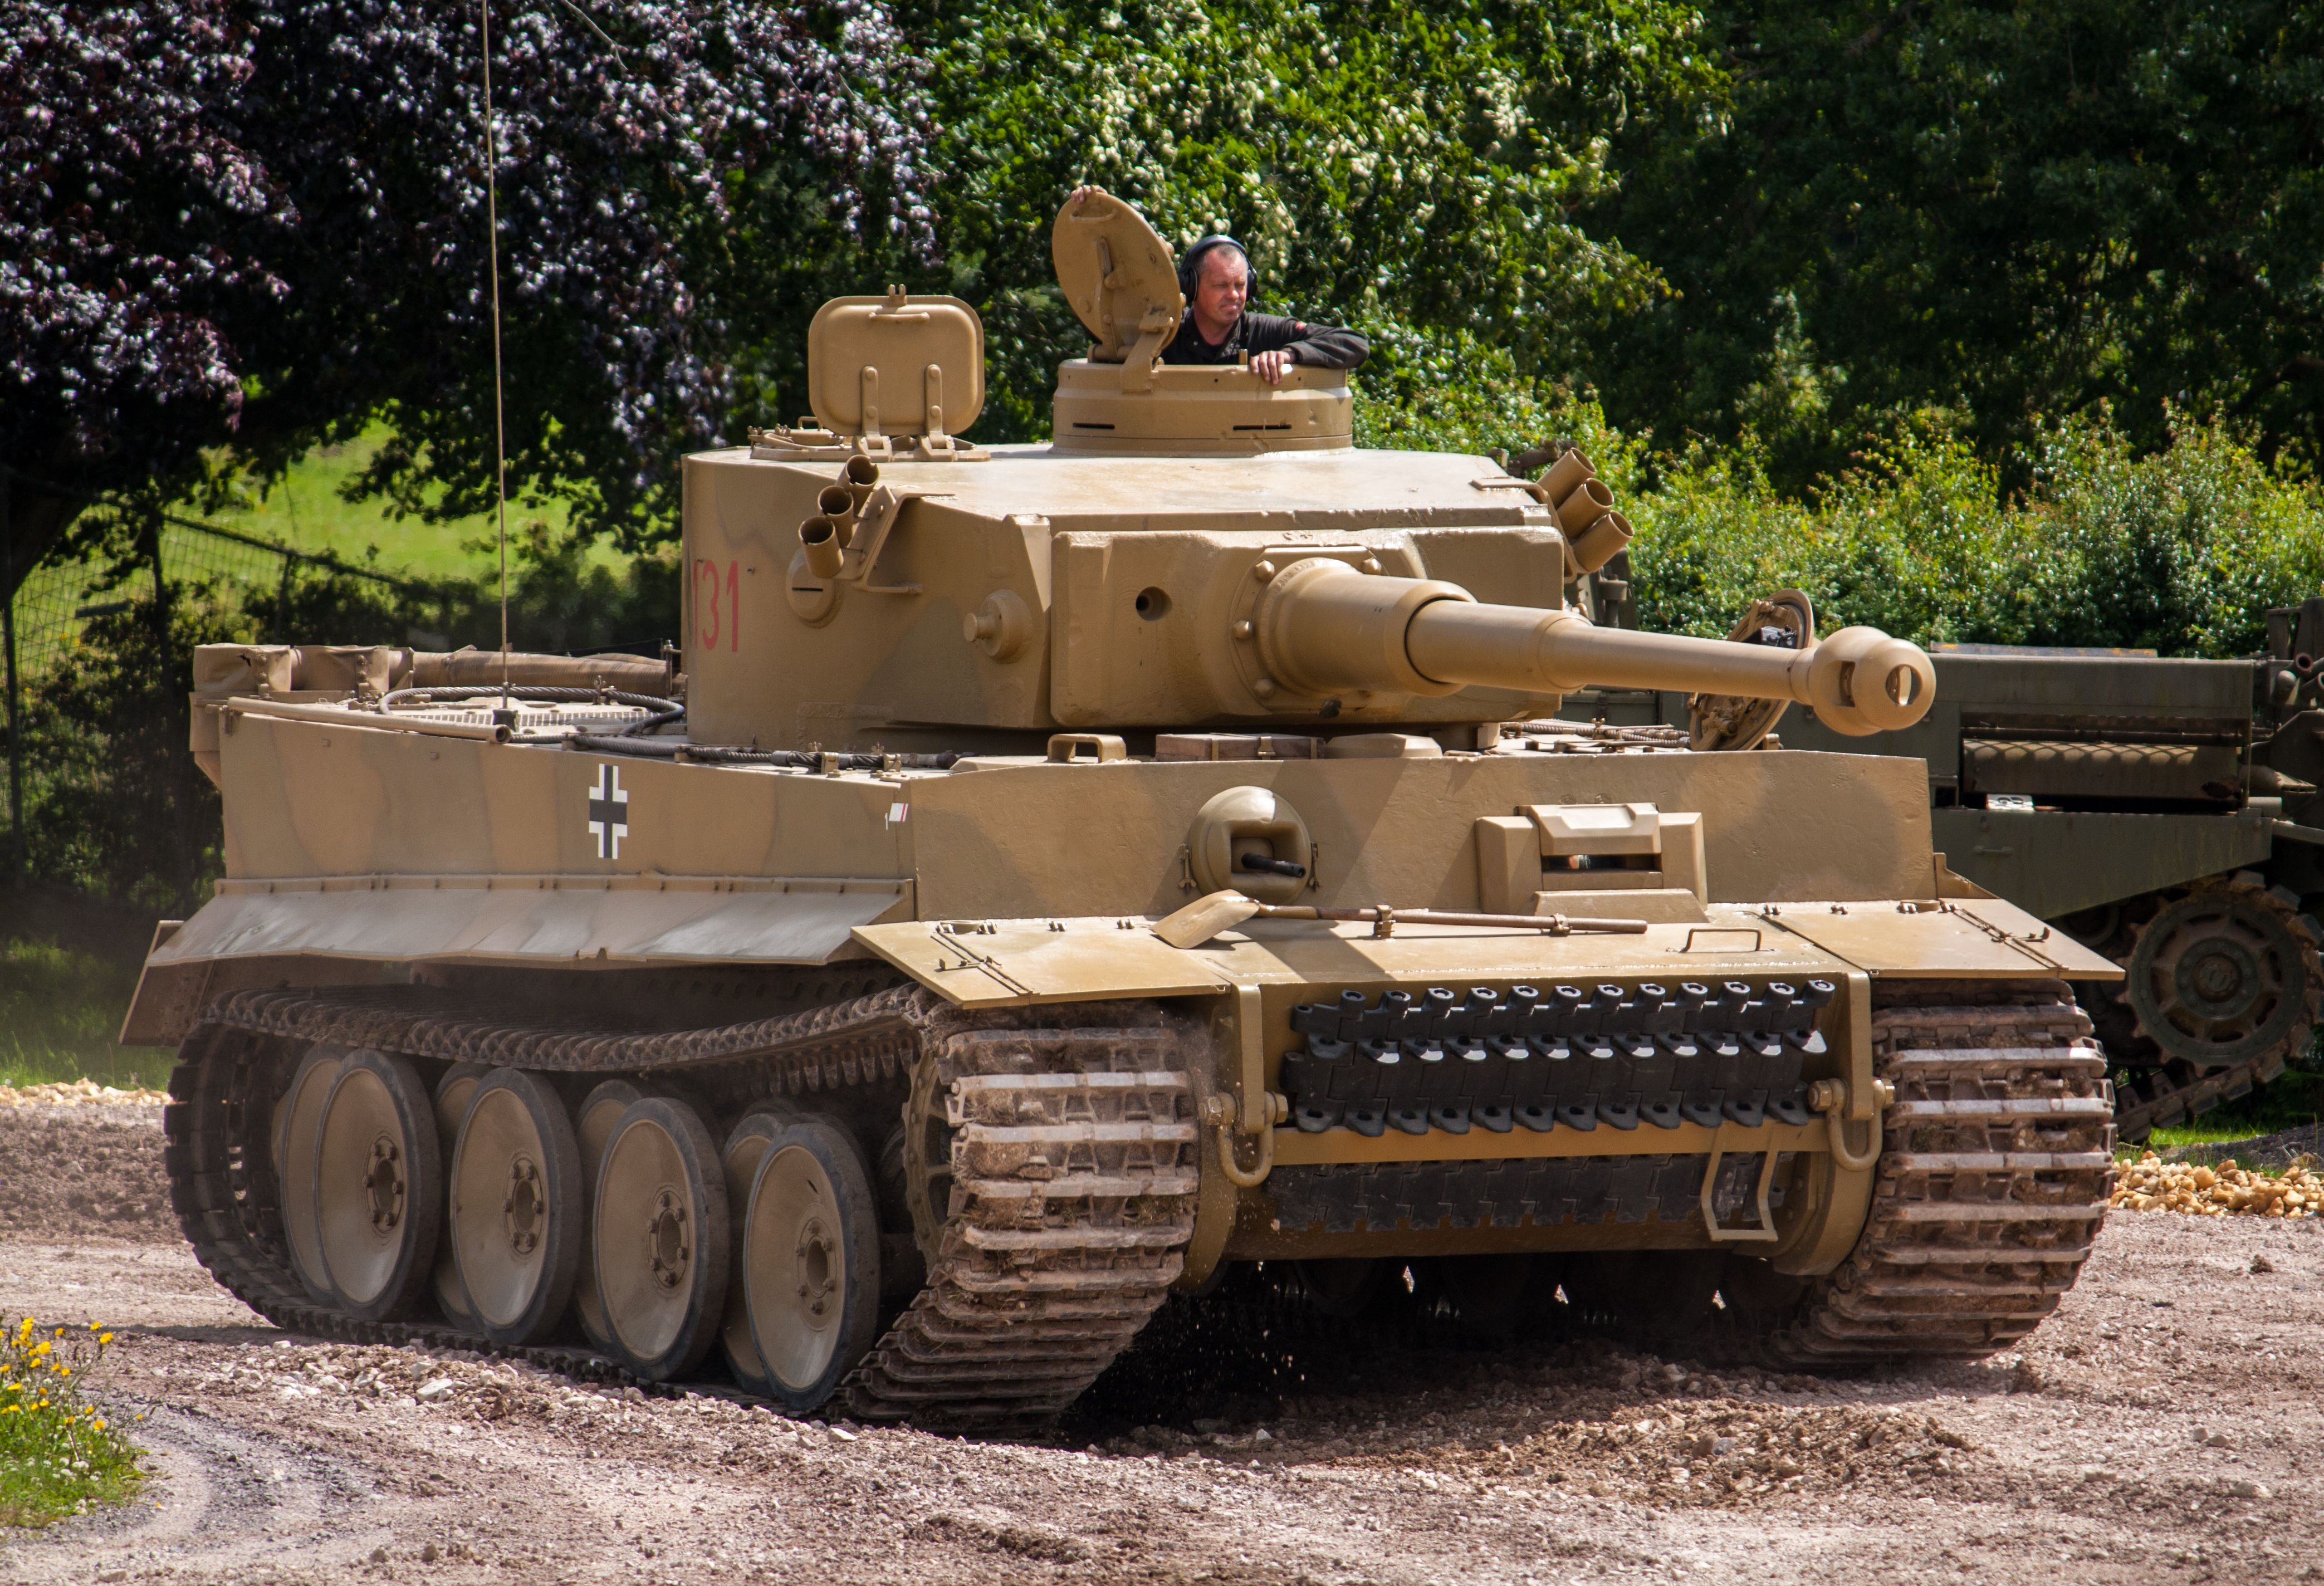 8 Reasons Why The Tiger Is The Most Overrated WW2 Tank | HotCars